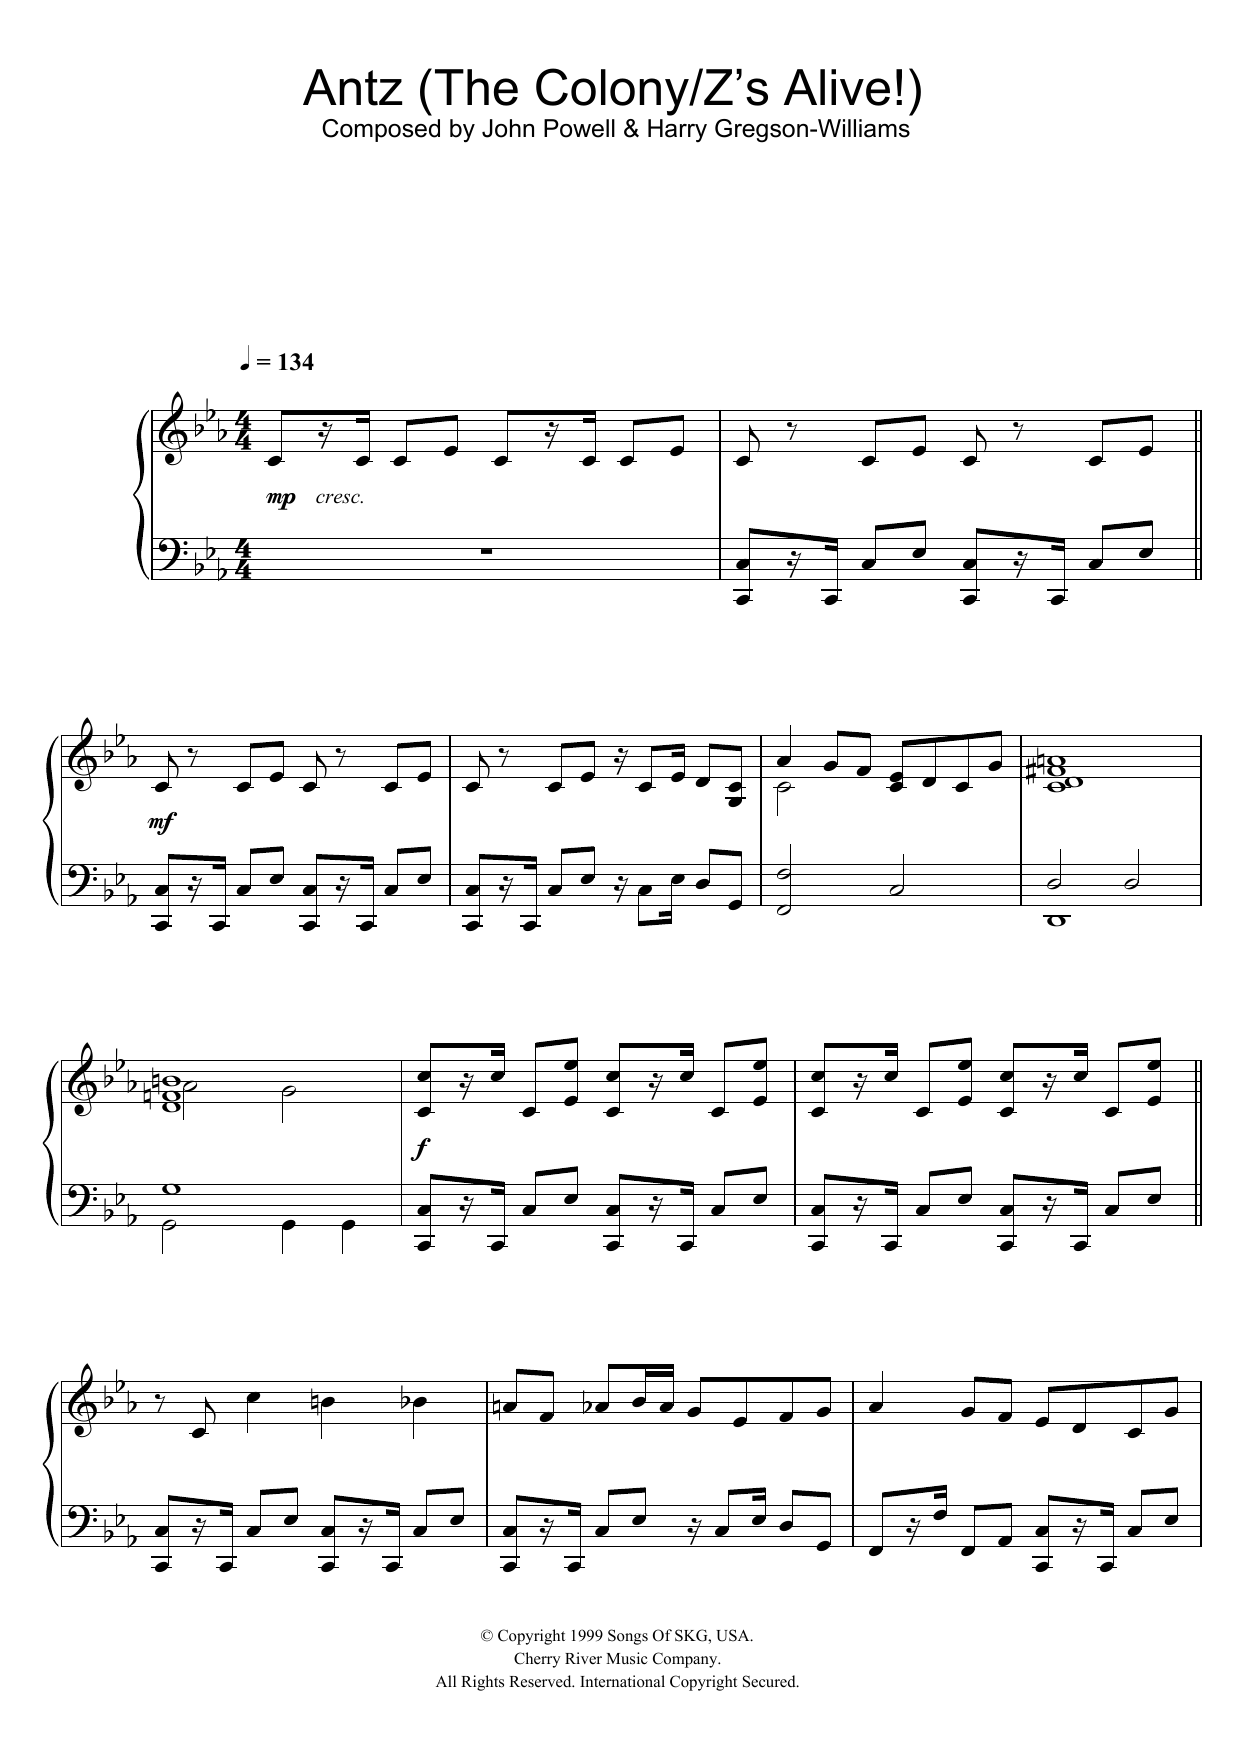 Antz (The Colony/Z's Alive!) Sheet Music